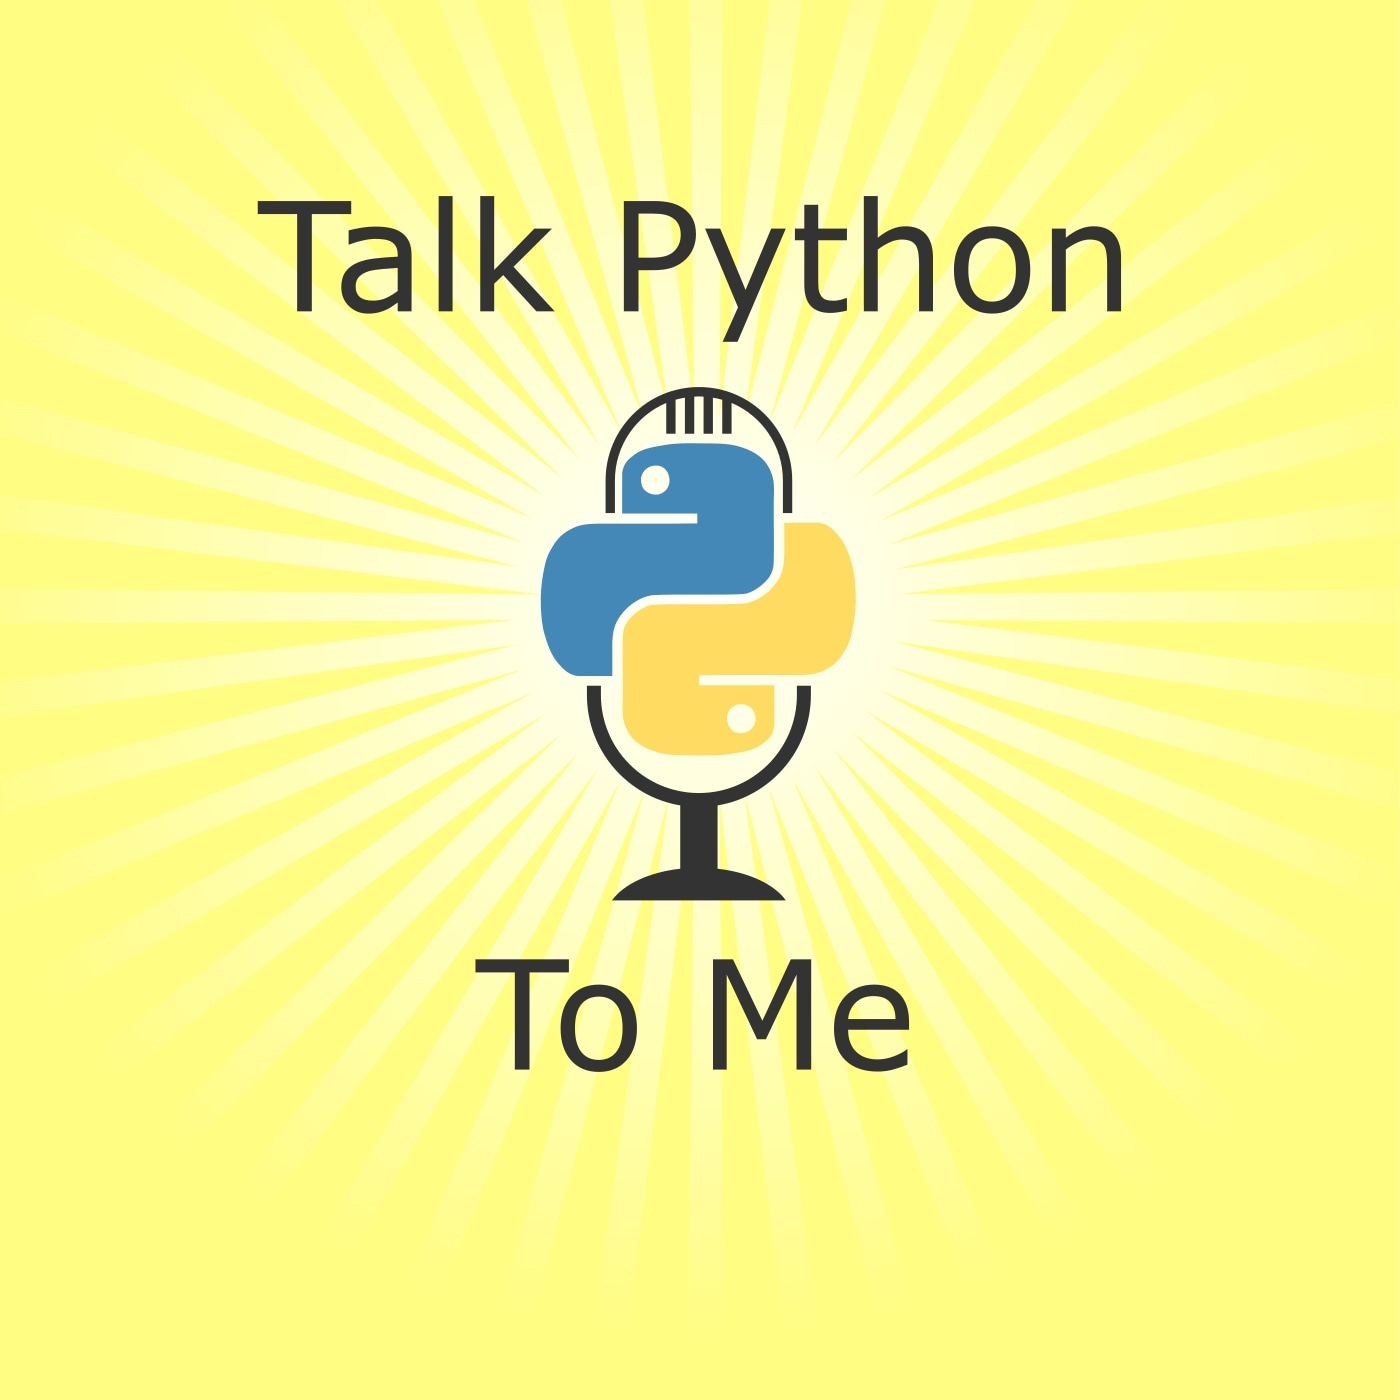 Talk Python To Me promo codes